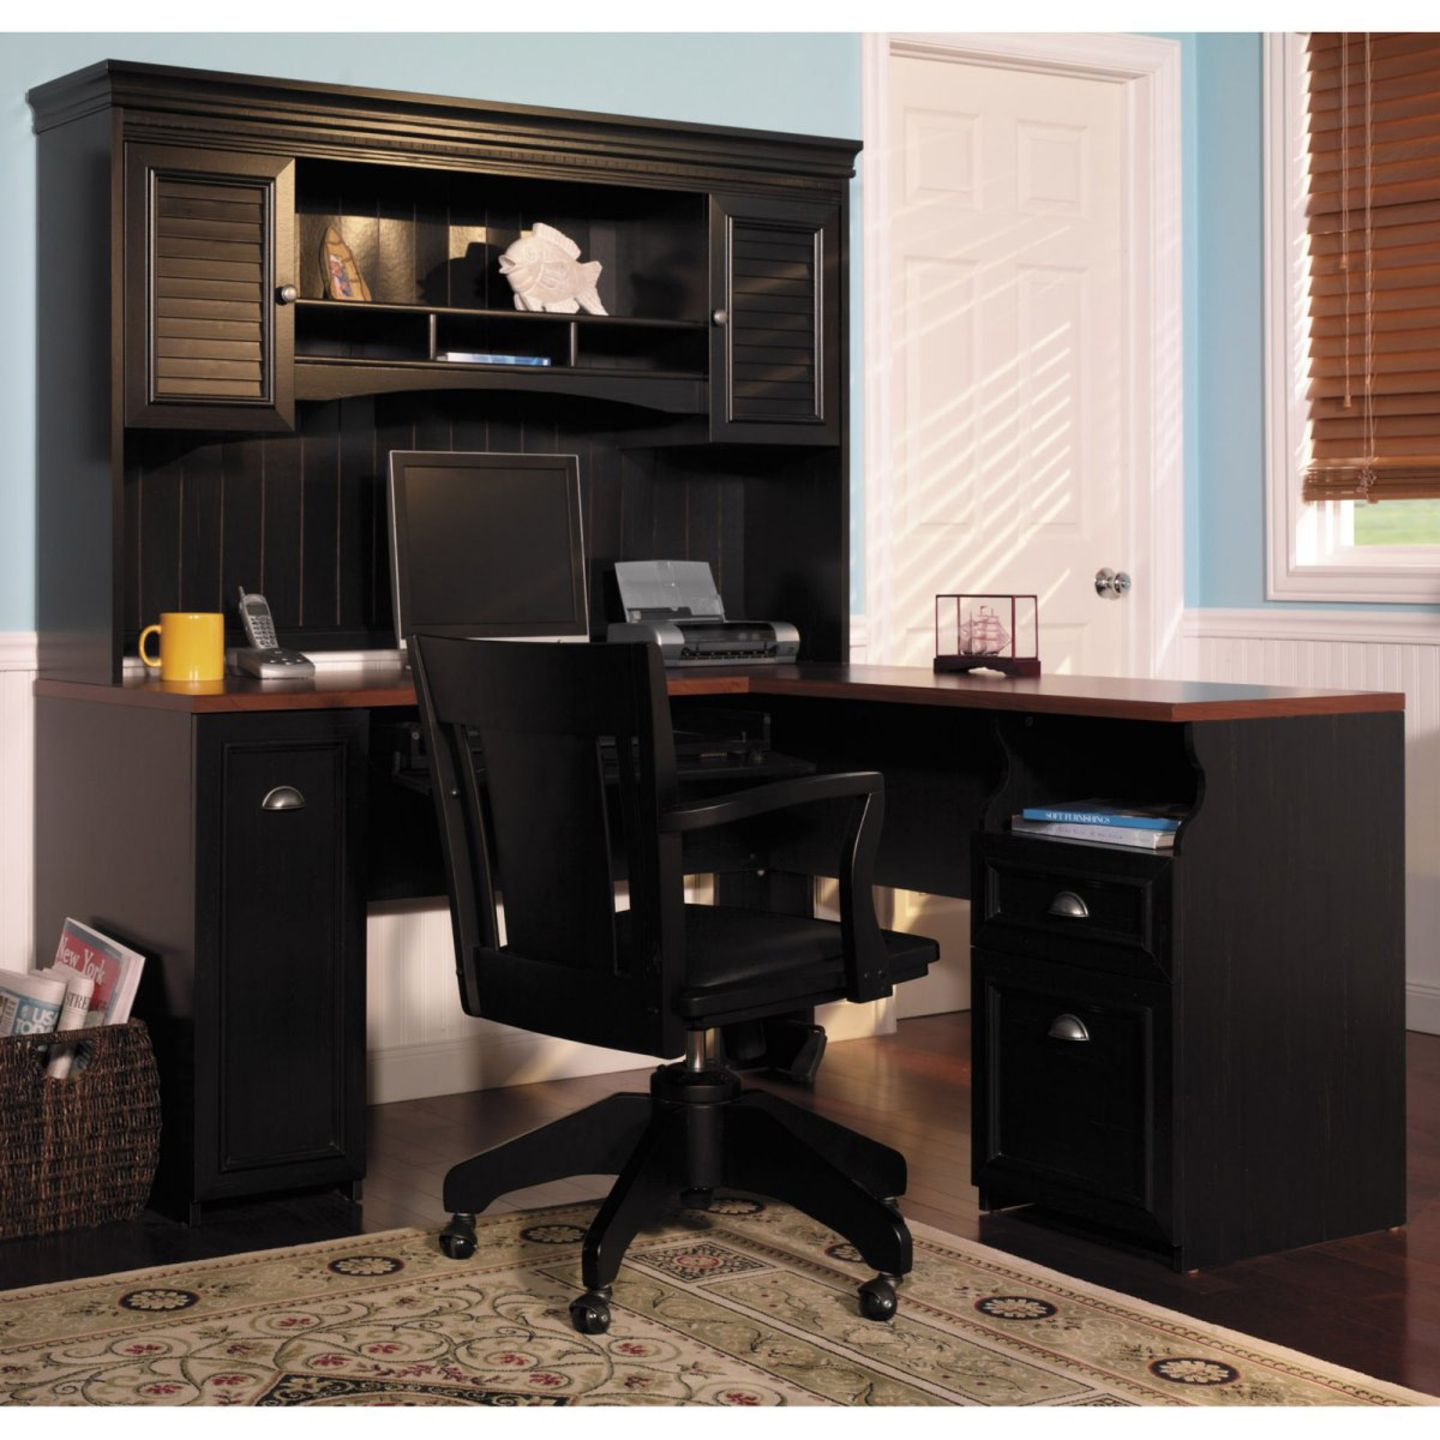 Bush Fairview Computer Desk and Optional Hutch in Antique Black   The Bush  Fairview Desk and Hutch is a complete home office workstation that delivers. furniture home office desk with hutch painted with black color